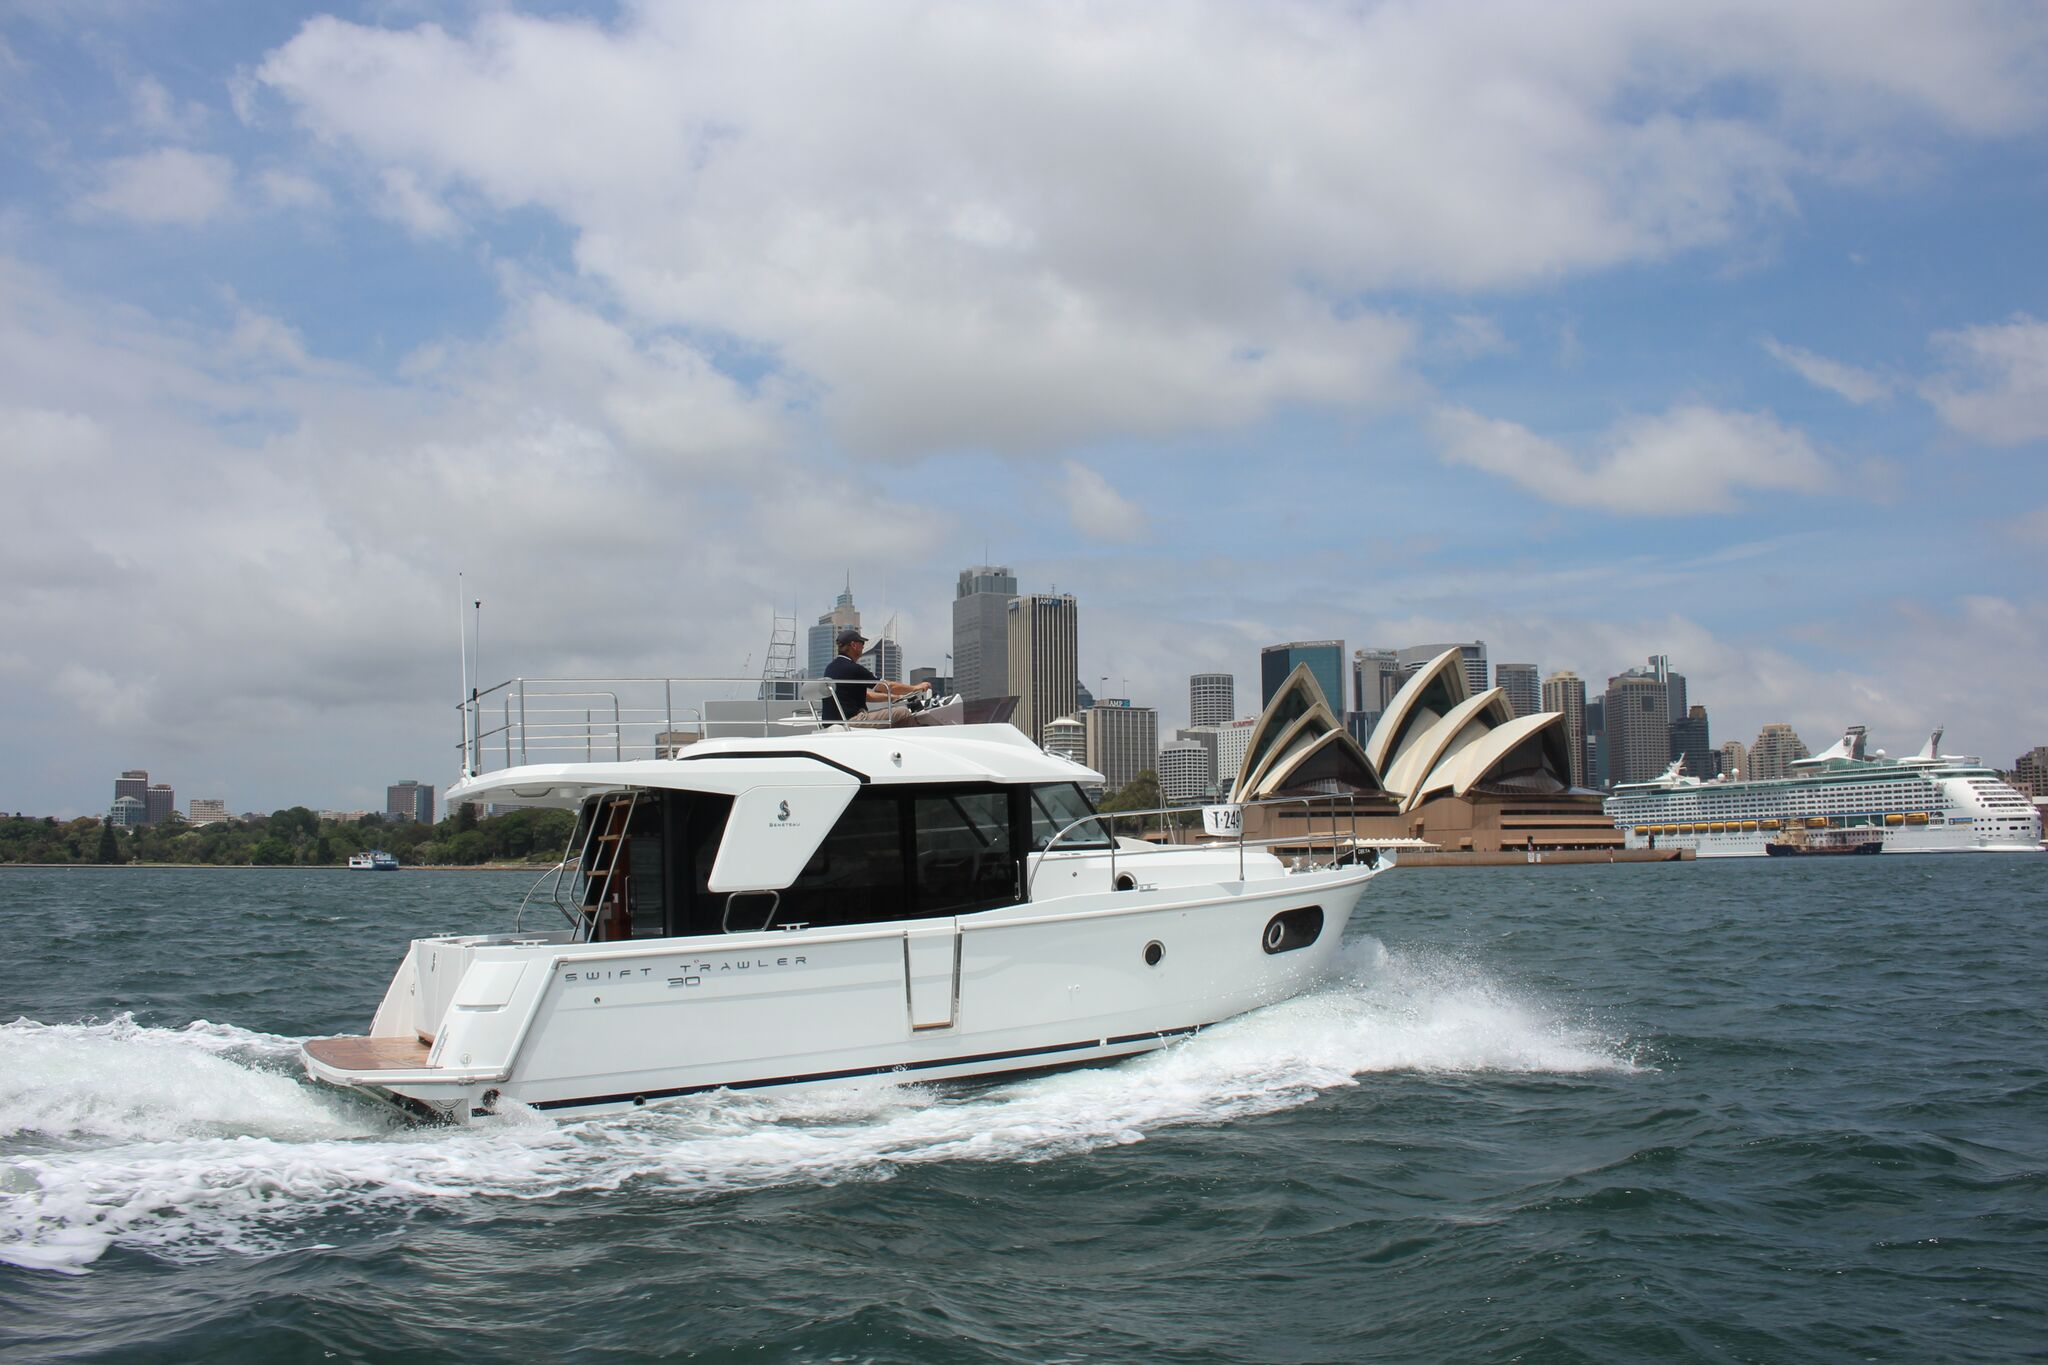 Owner Review - Swift Trawler 30 Ticks All the Boxes